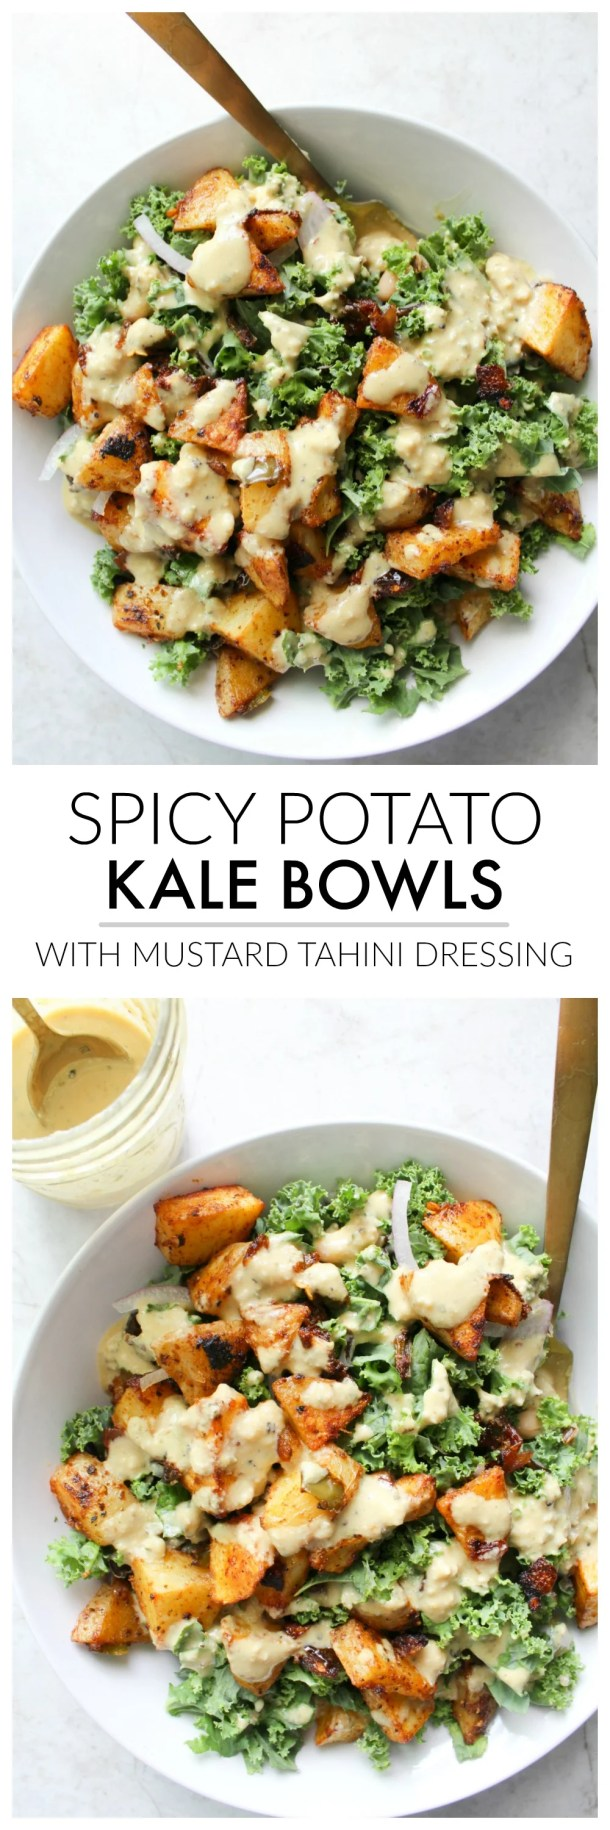 These Spicy Potato Kale Bowls with Mustard Tahini Dressing are the perfect Fall meal. Crispy potatoes, red onion, marinated kale and a delicious creamy dressing. Simple and healthy | ThisSavoryVegan.com #thissavoryvegan #veganbowl #healthy